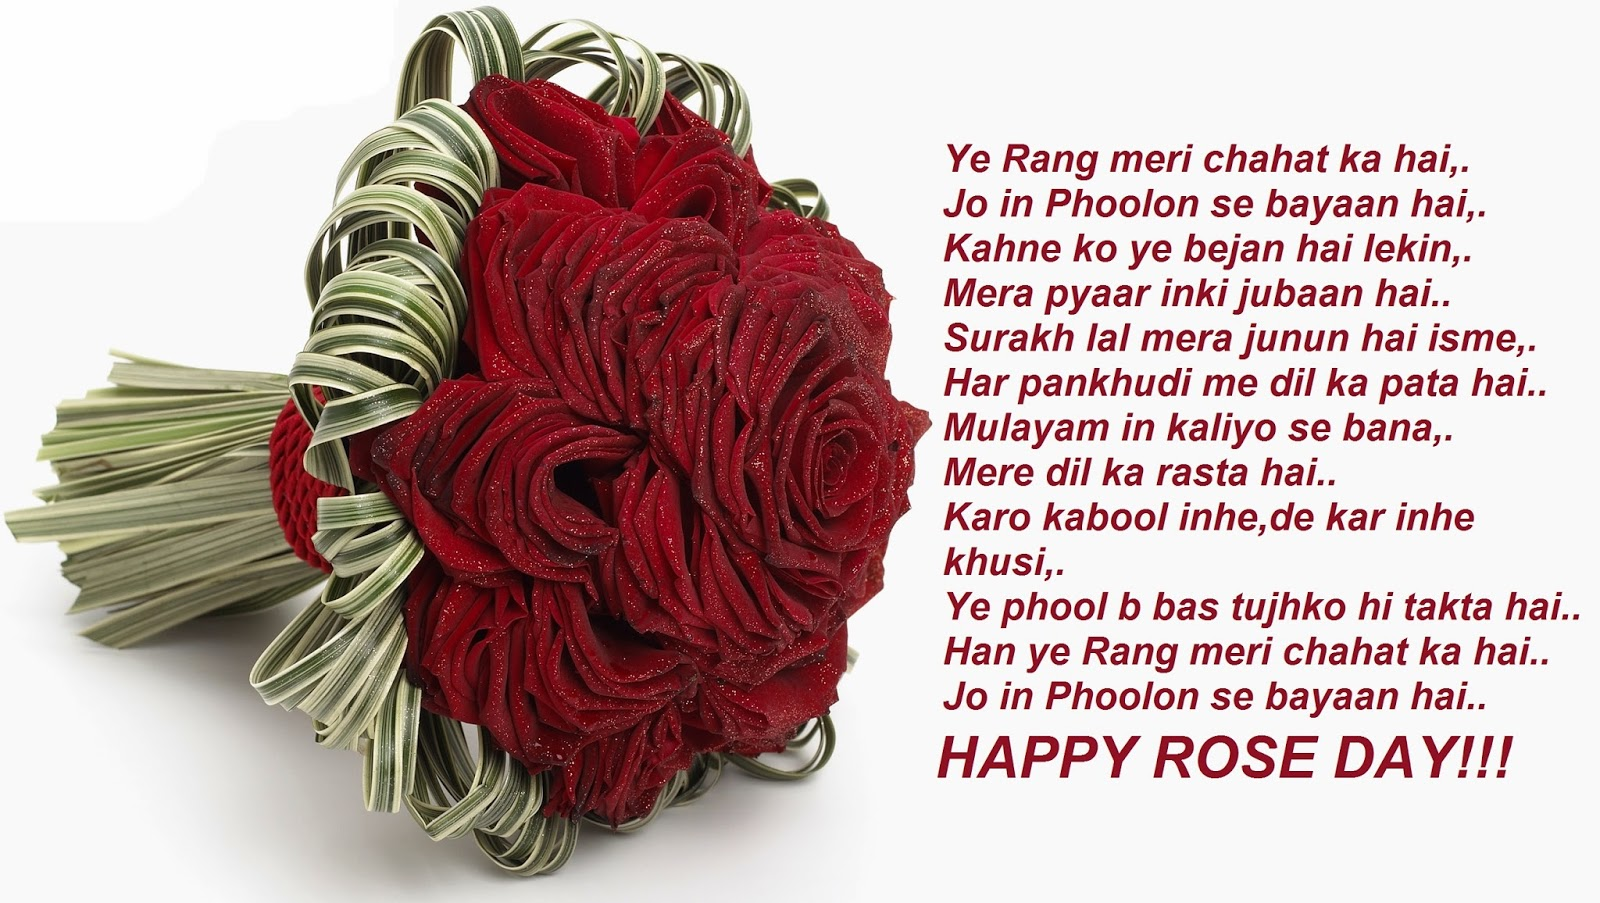 2014 click here for greetings and wishes of rose day 2014 click here . 1600 x 903.New Year Wishes For Lover Essays In Hindi Language